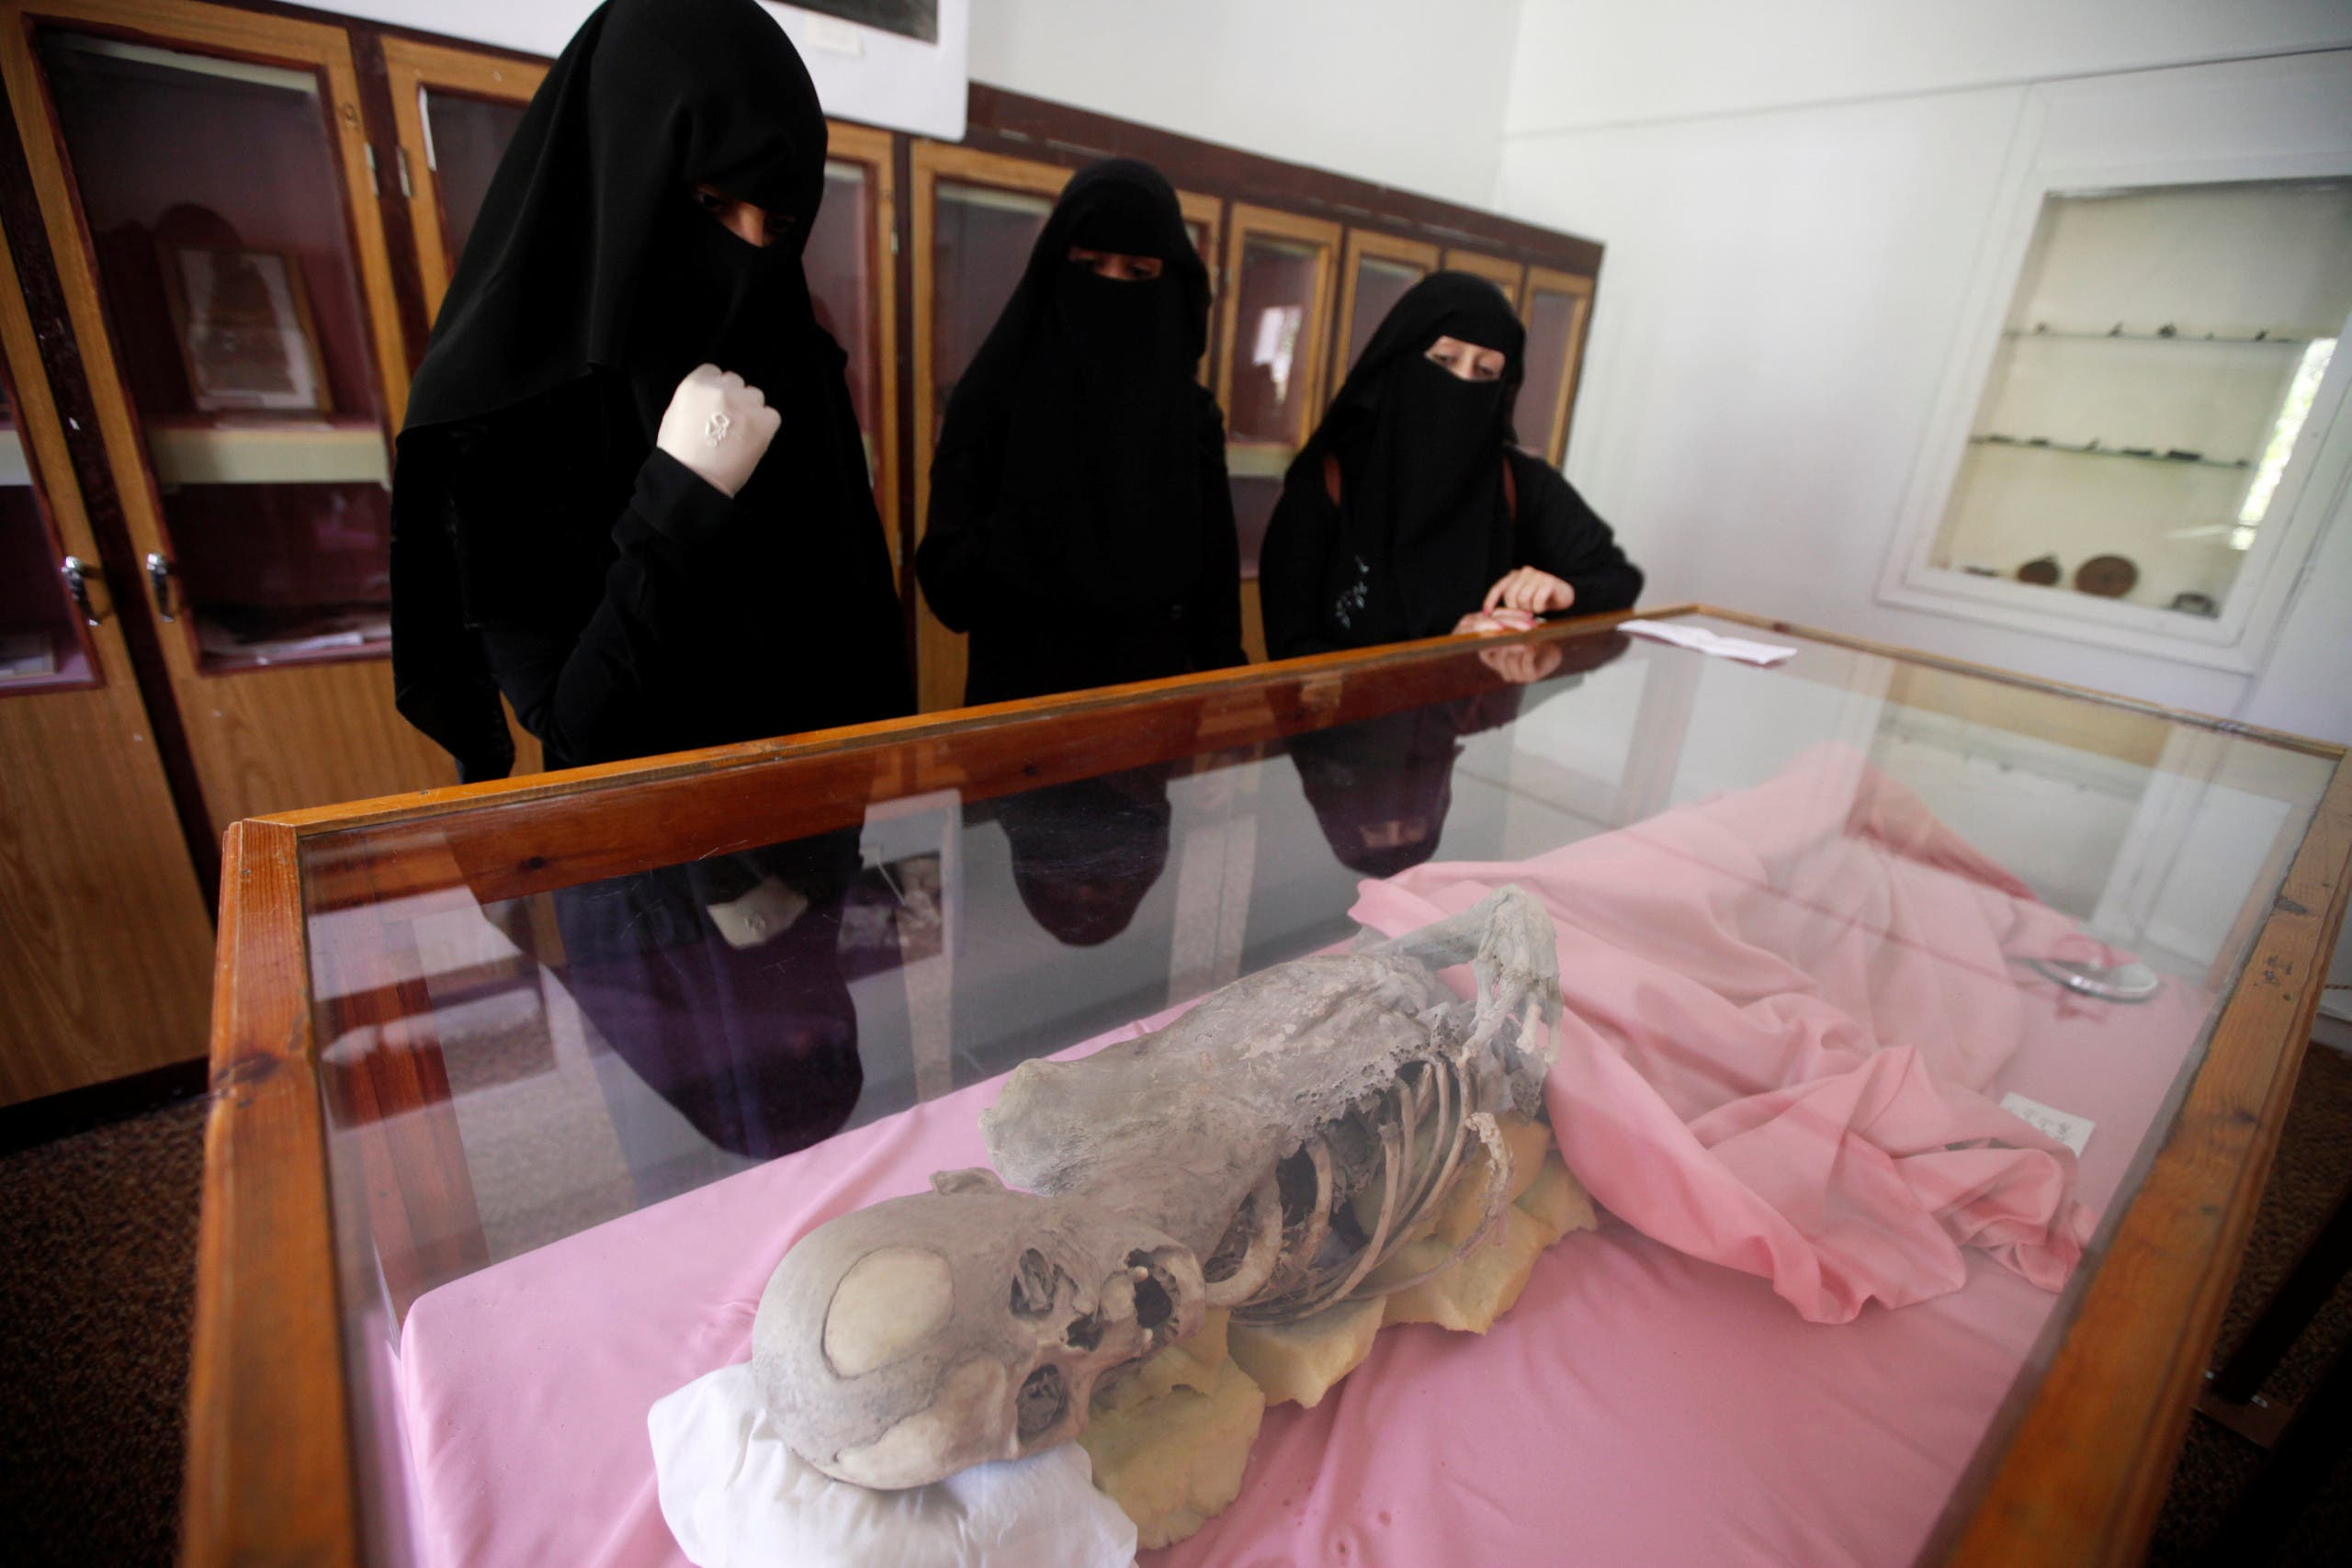 Women look at a mummy dating back to an ancient Yemen era displayed at a museum at Sanaa University, in Sanaa, Yemen April 29, 2017. reuters